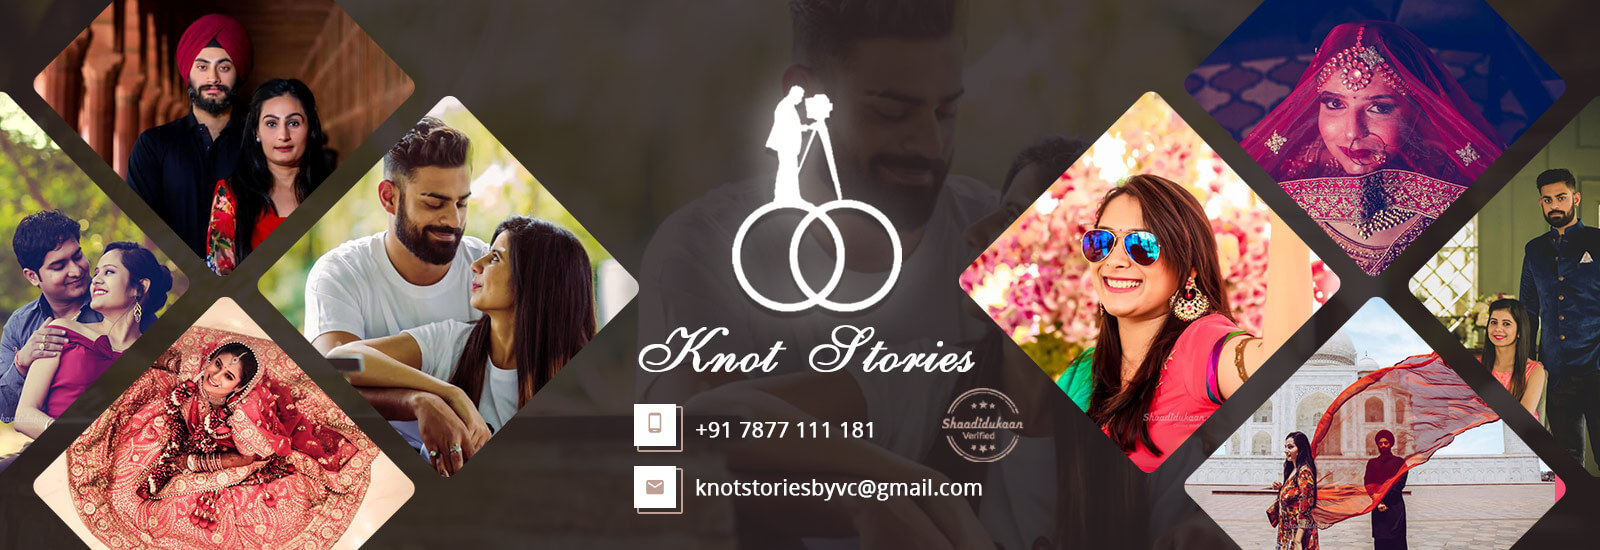 Knot Stories by VK